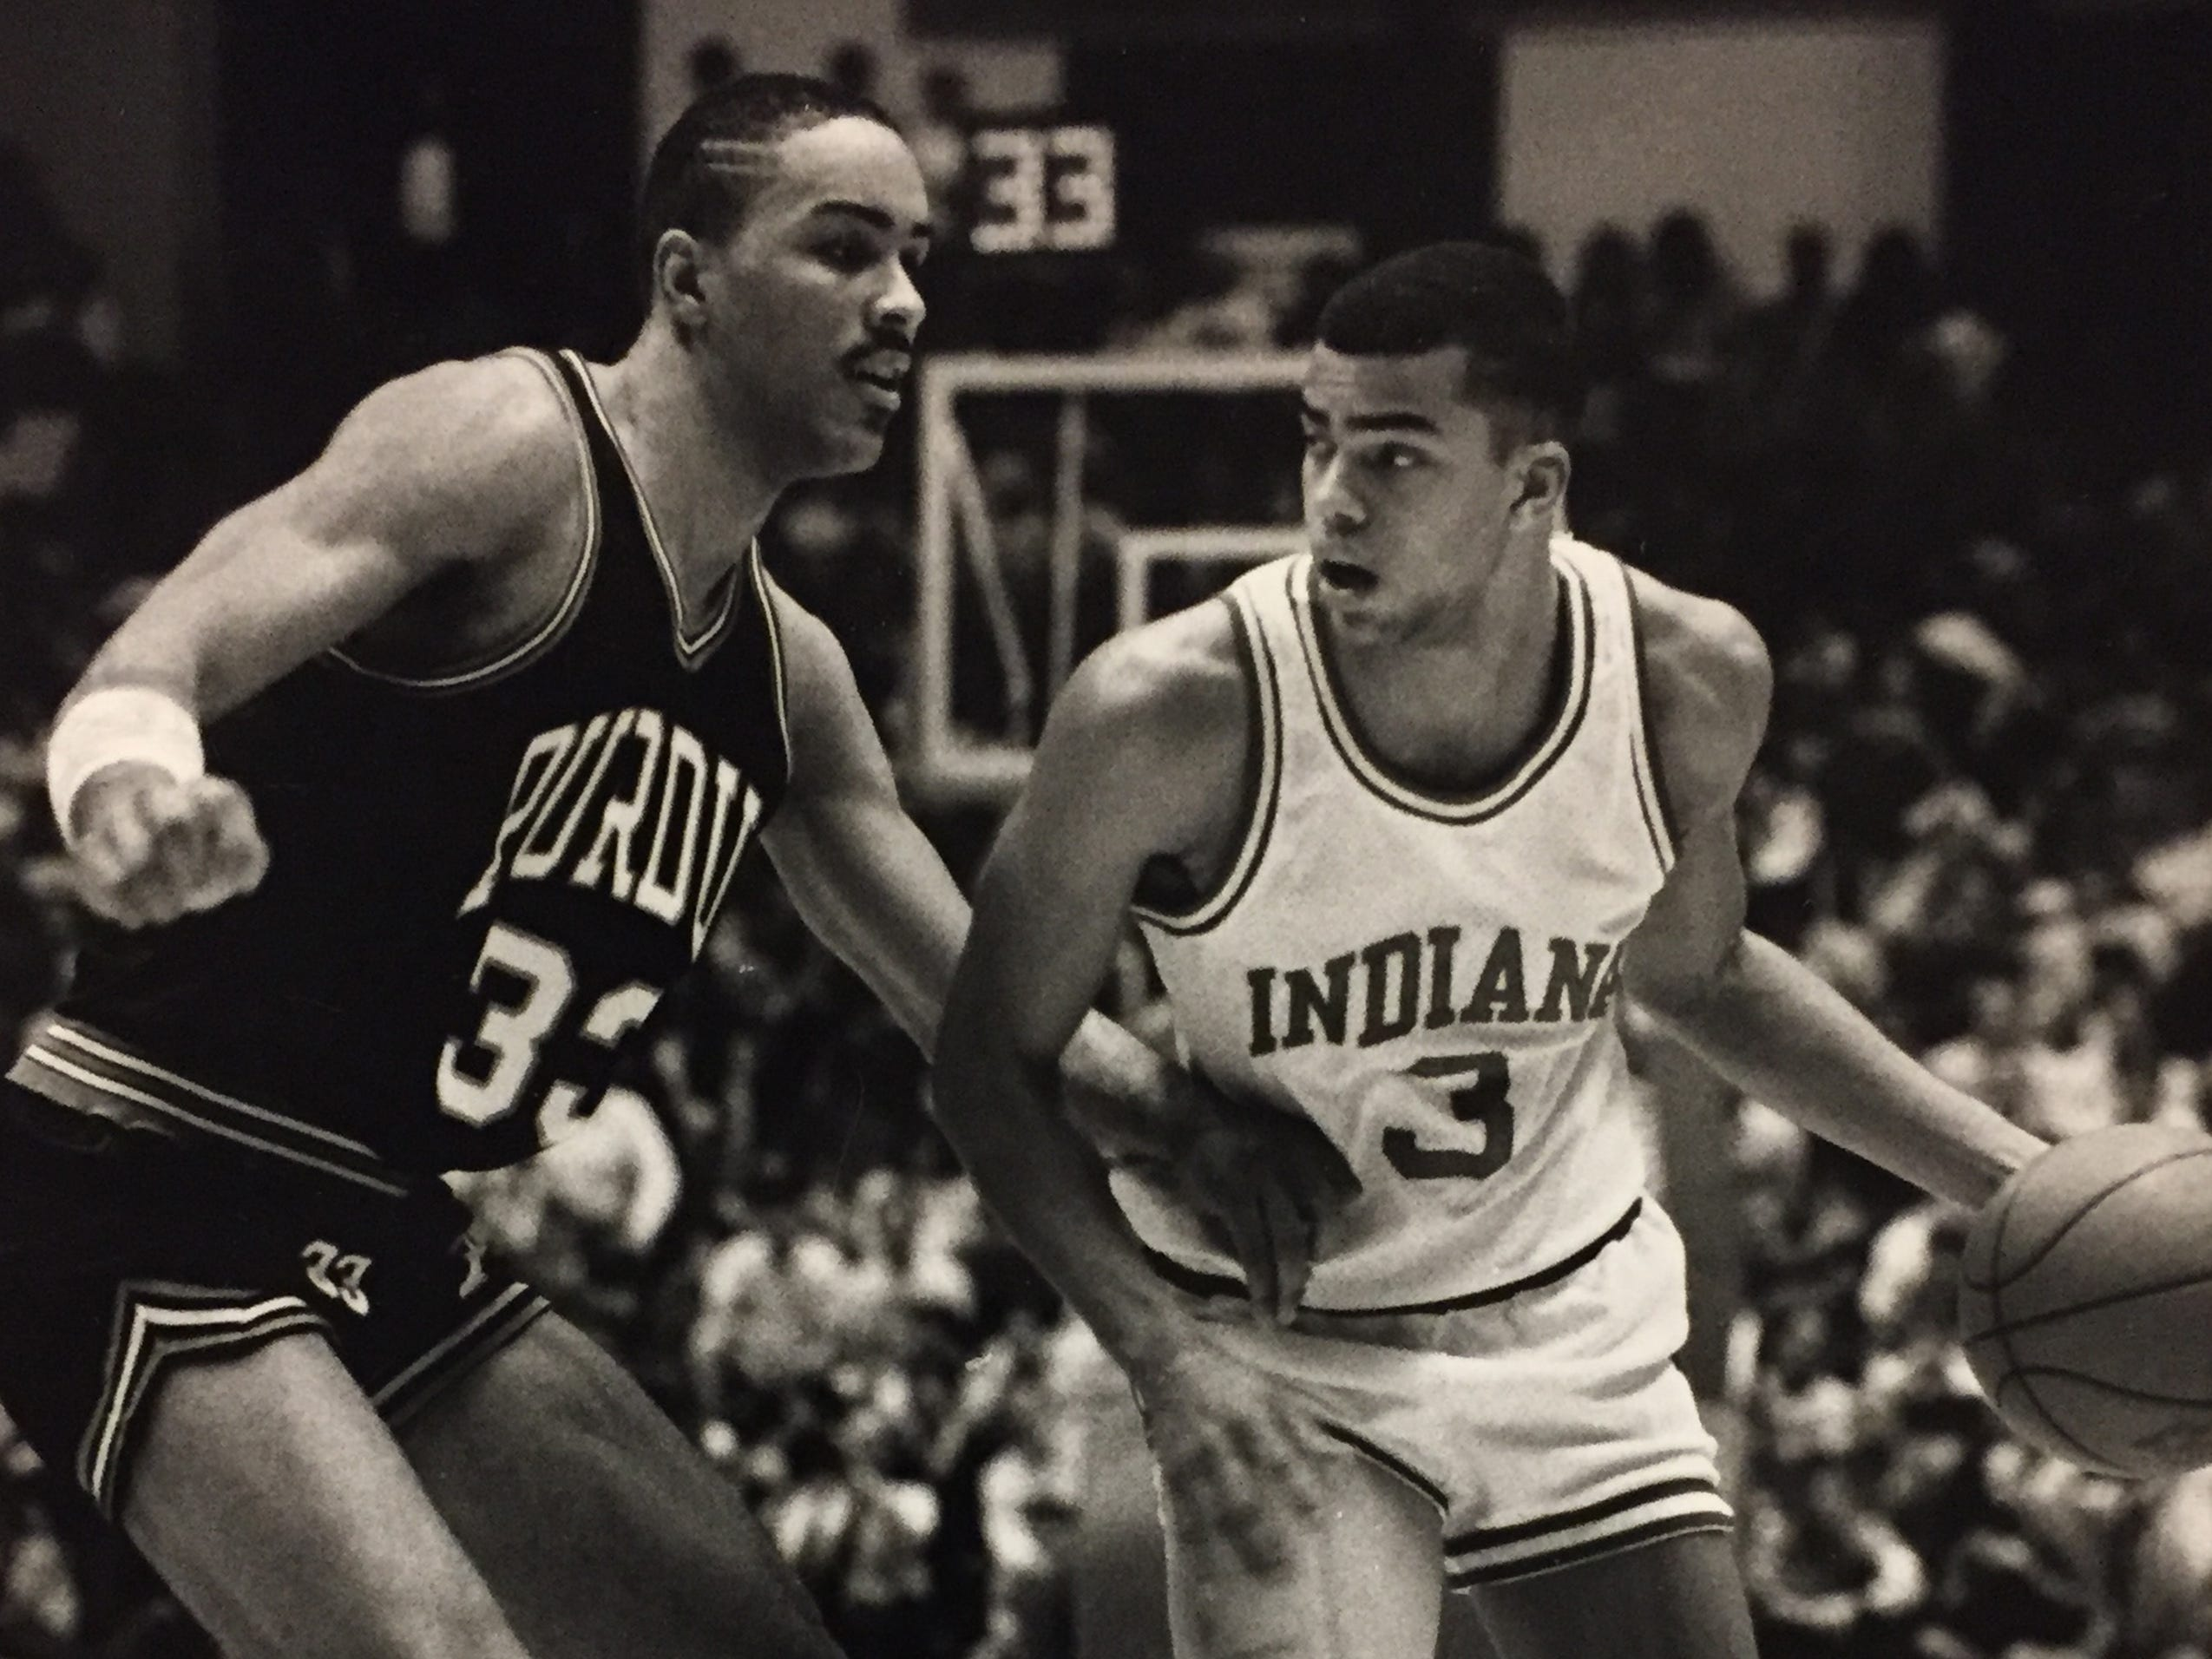 Jay Edwards looks for space against Purdue on Jan. 30, 1988.